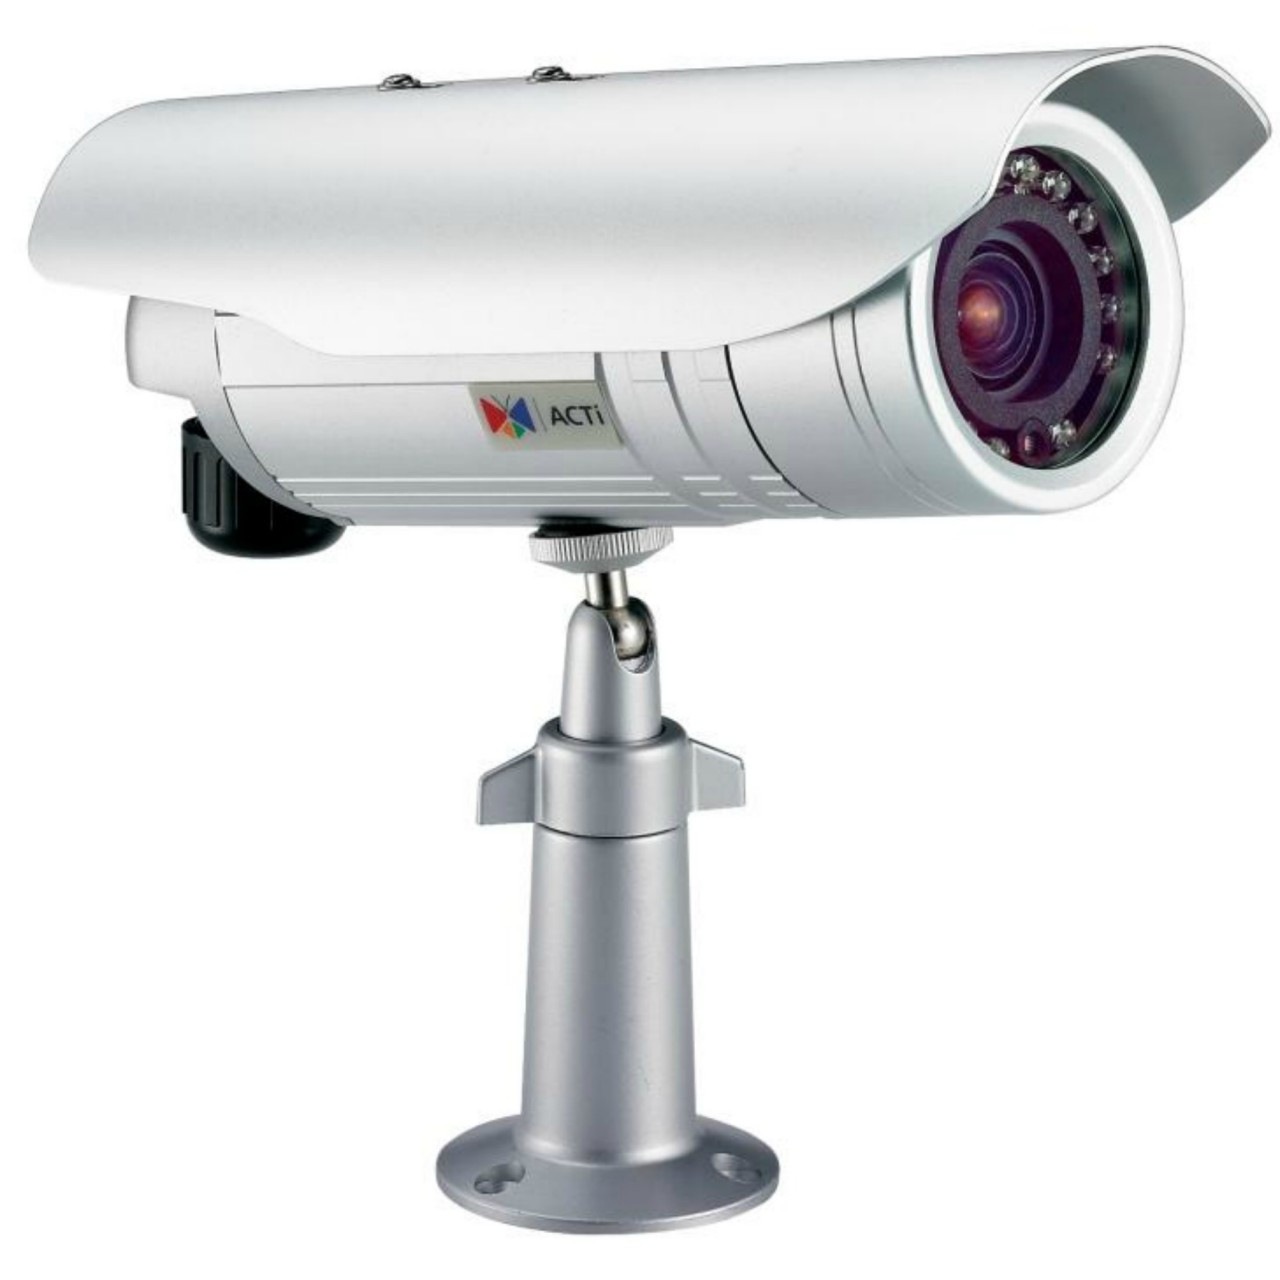 ACTi ACM-1231 Outdoor IR Megapixel PoE IP Camera